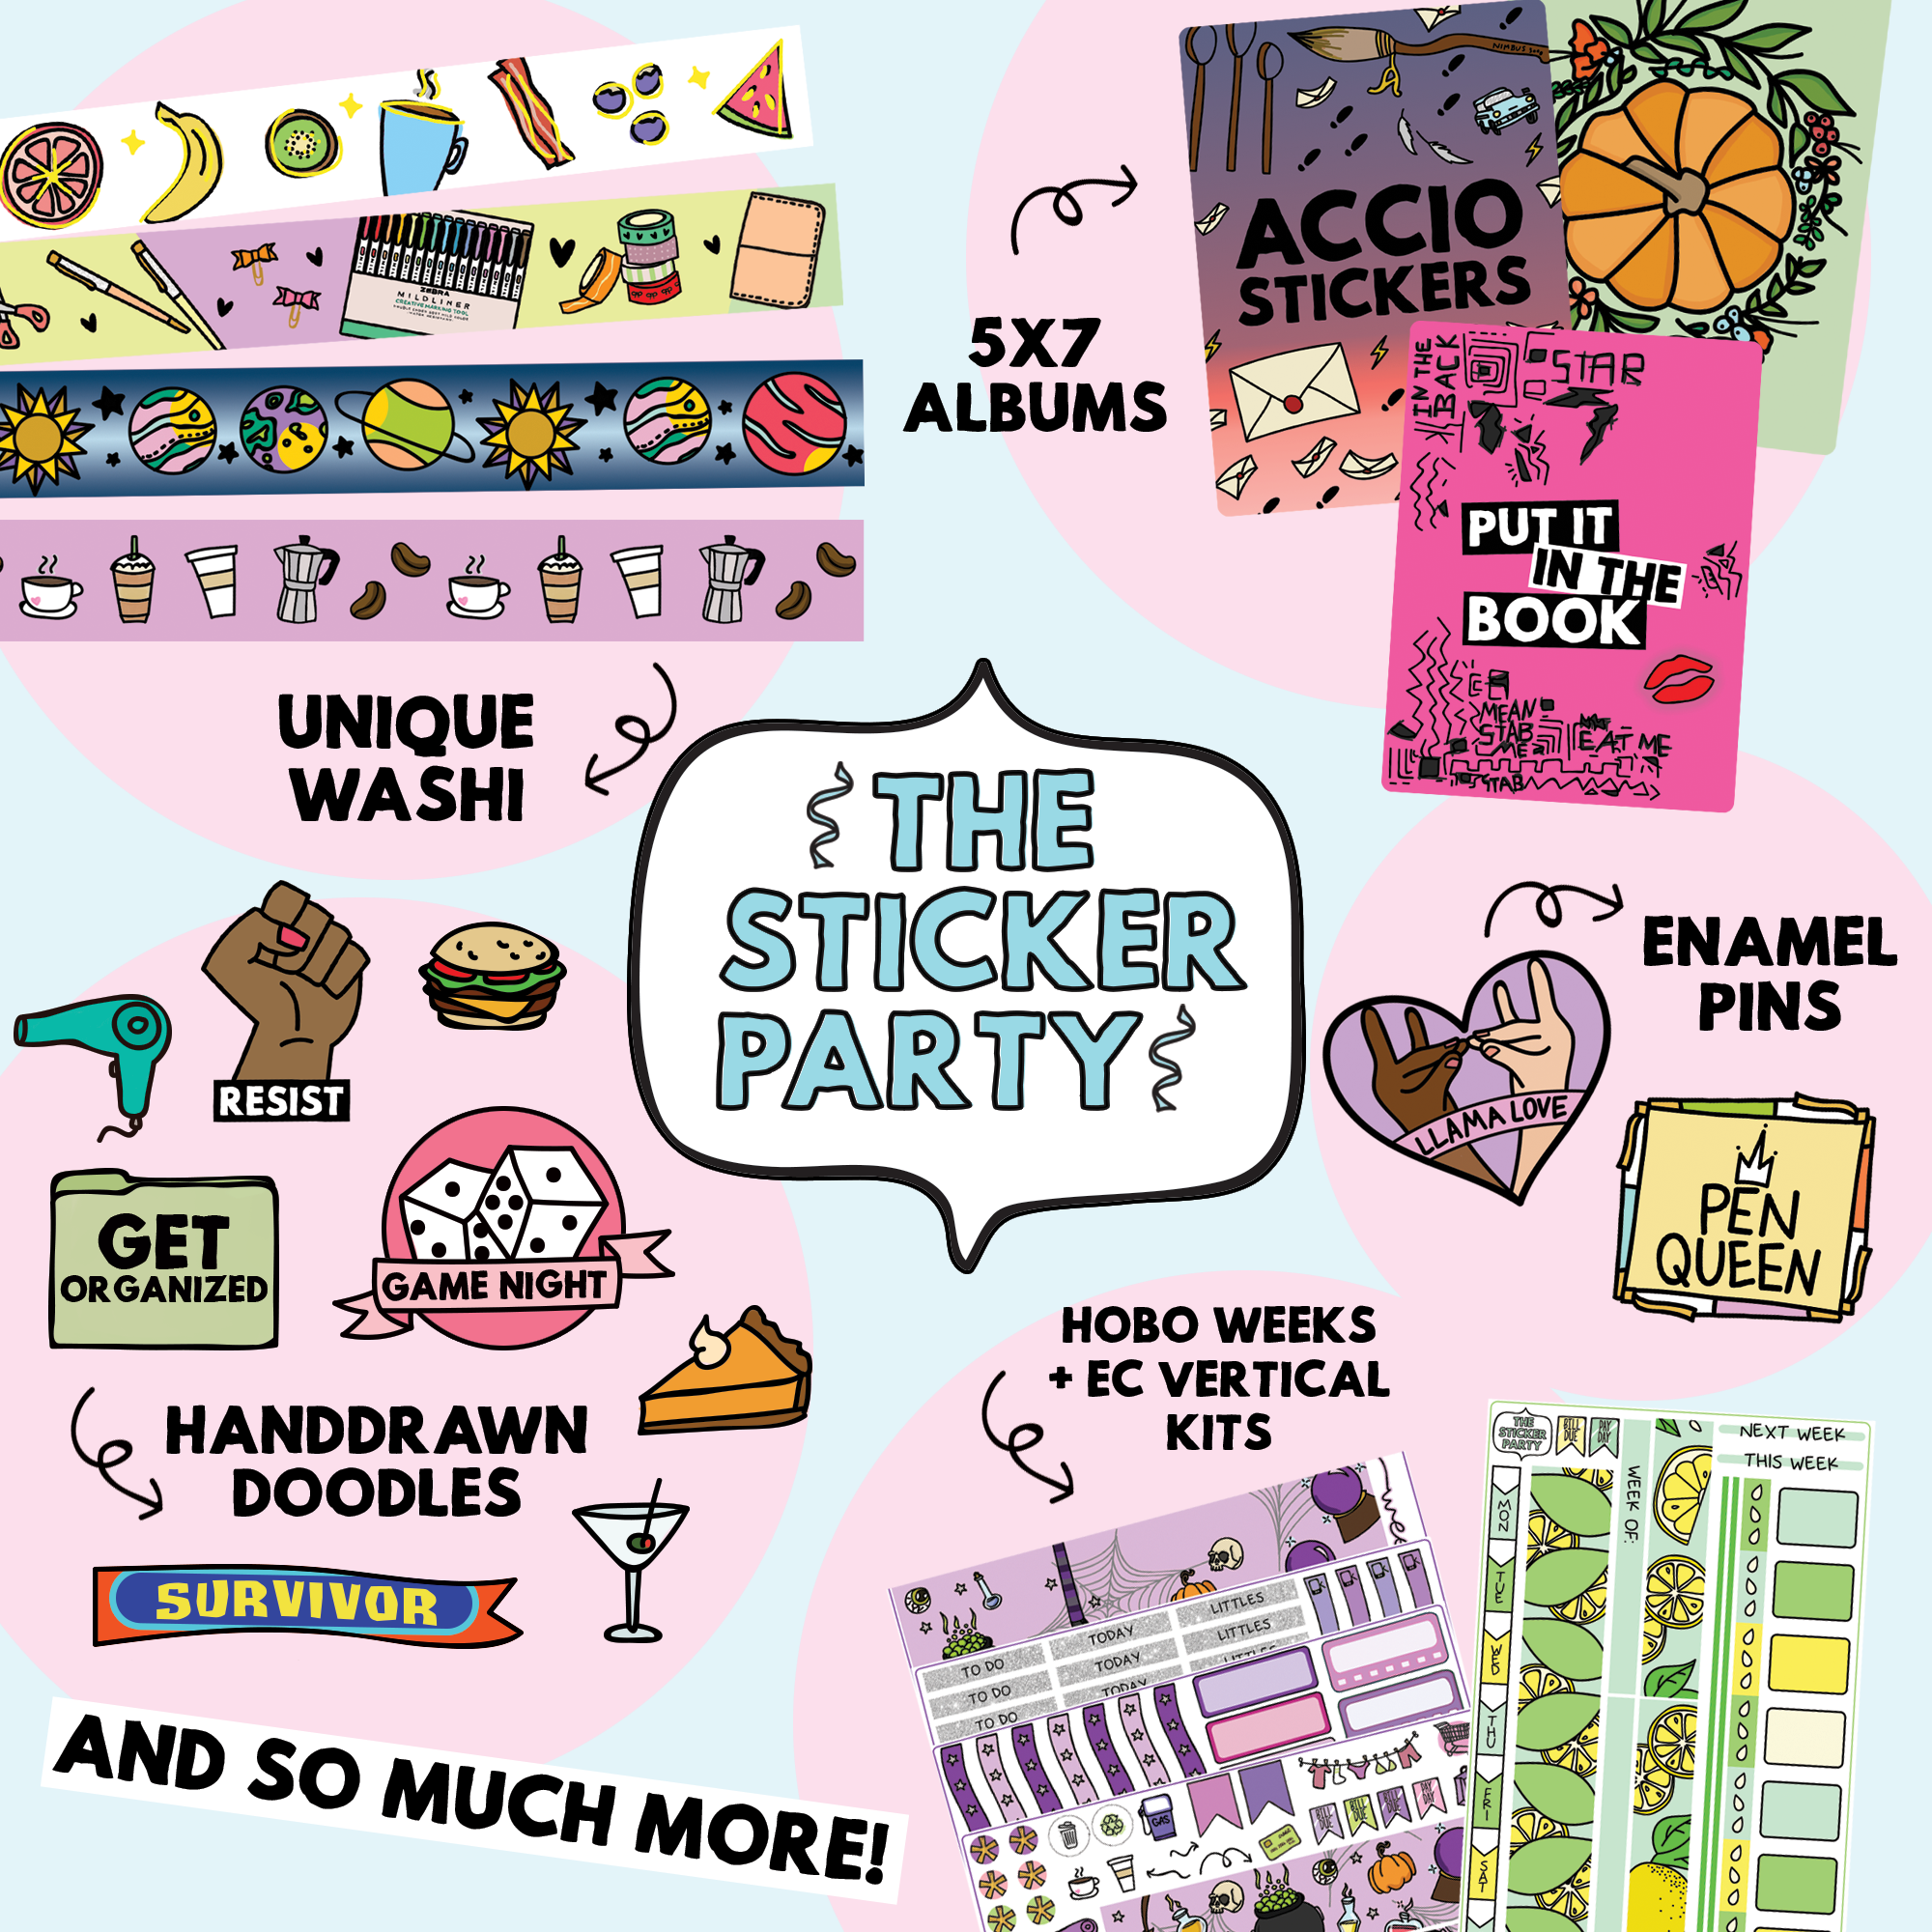 The Sticker Party